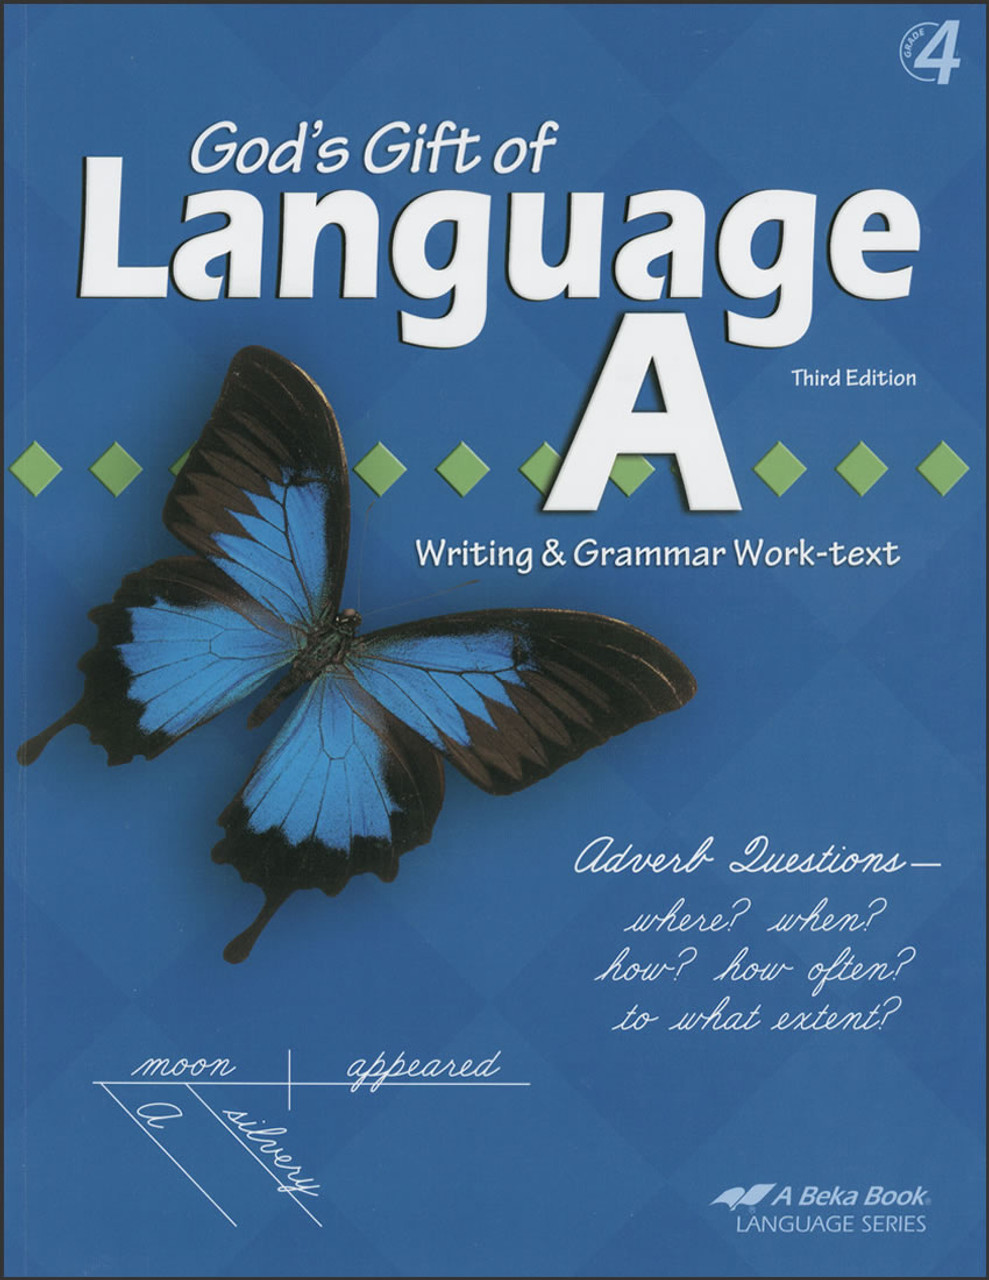 God's Gift of Language A, 3rd edition